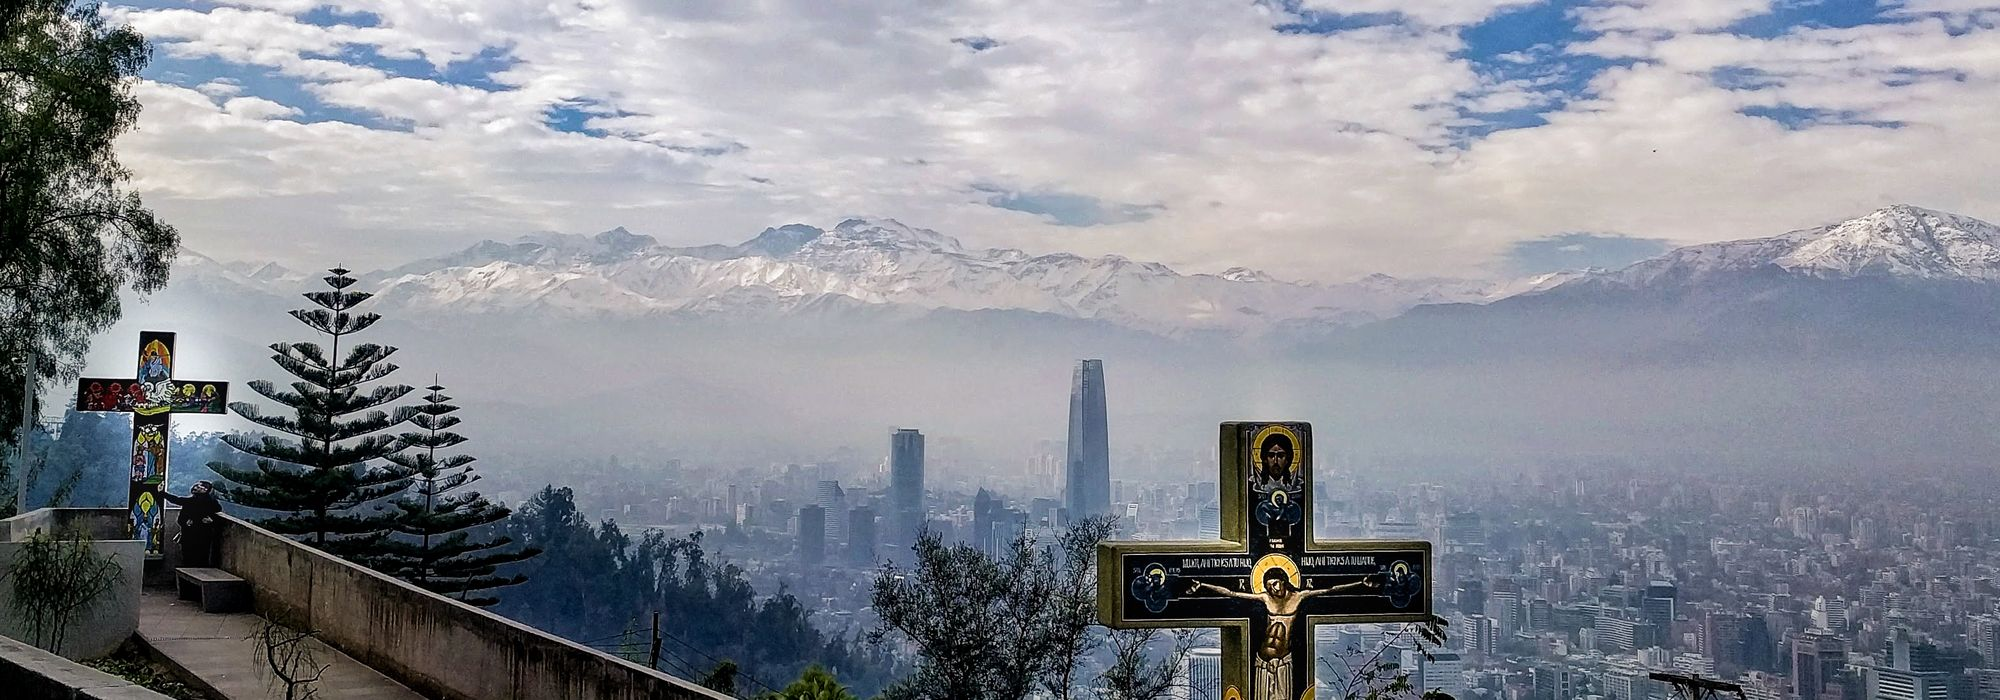 The path up Cerro San Cristobel with a view of Santiago in the background